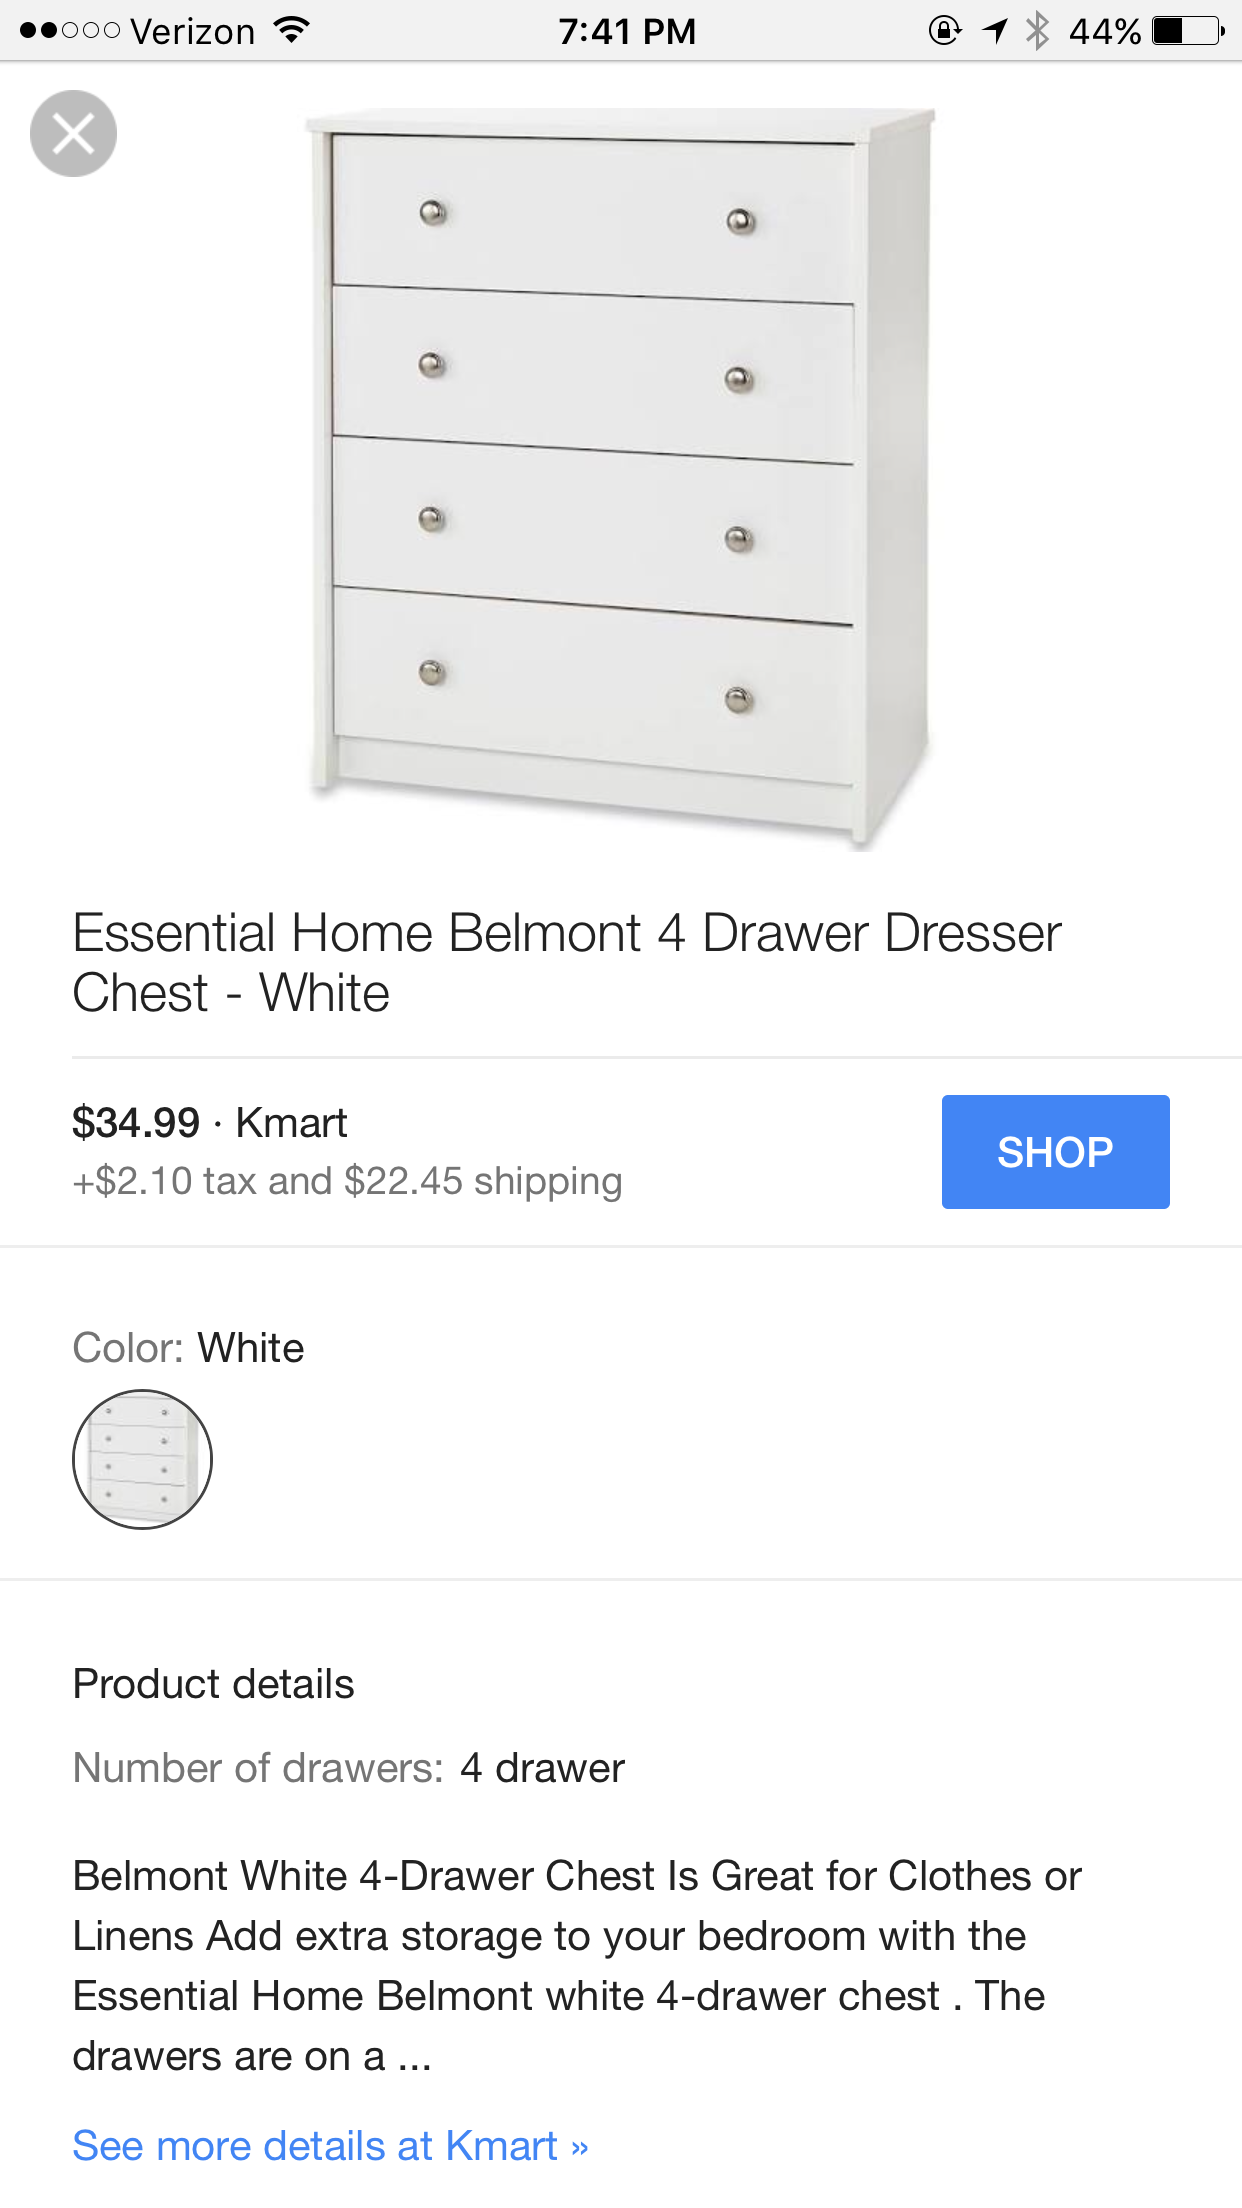 50 Kmart 4 Drawer Dresser